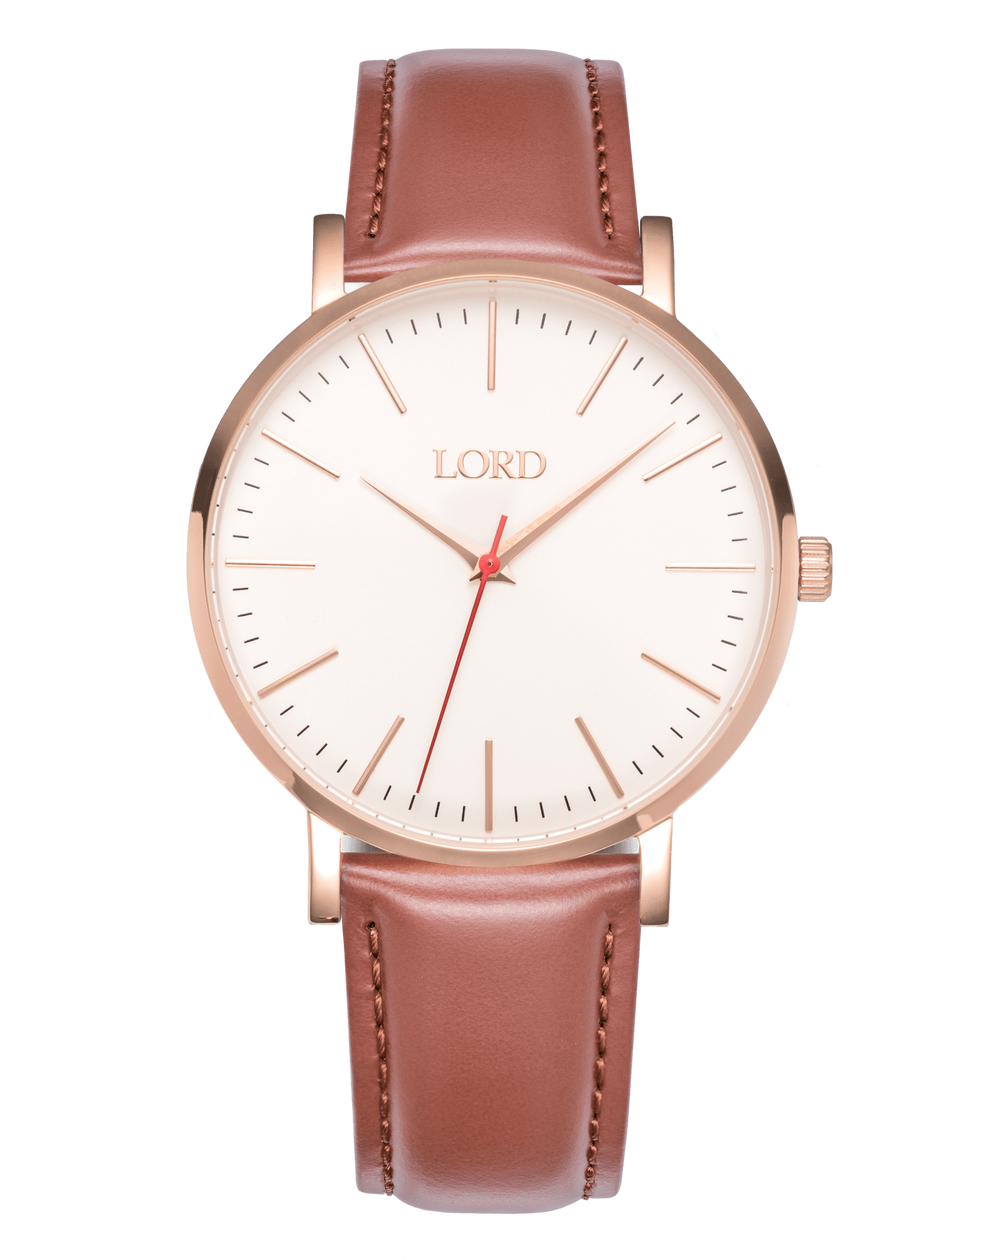 Rose gold tan watch men 39 s watches lord timepieces for Lord timepieces